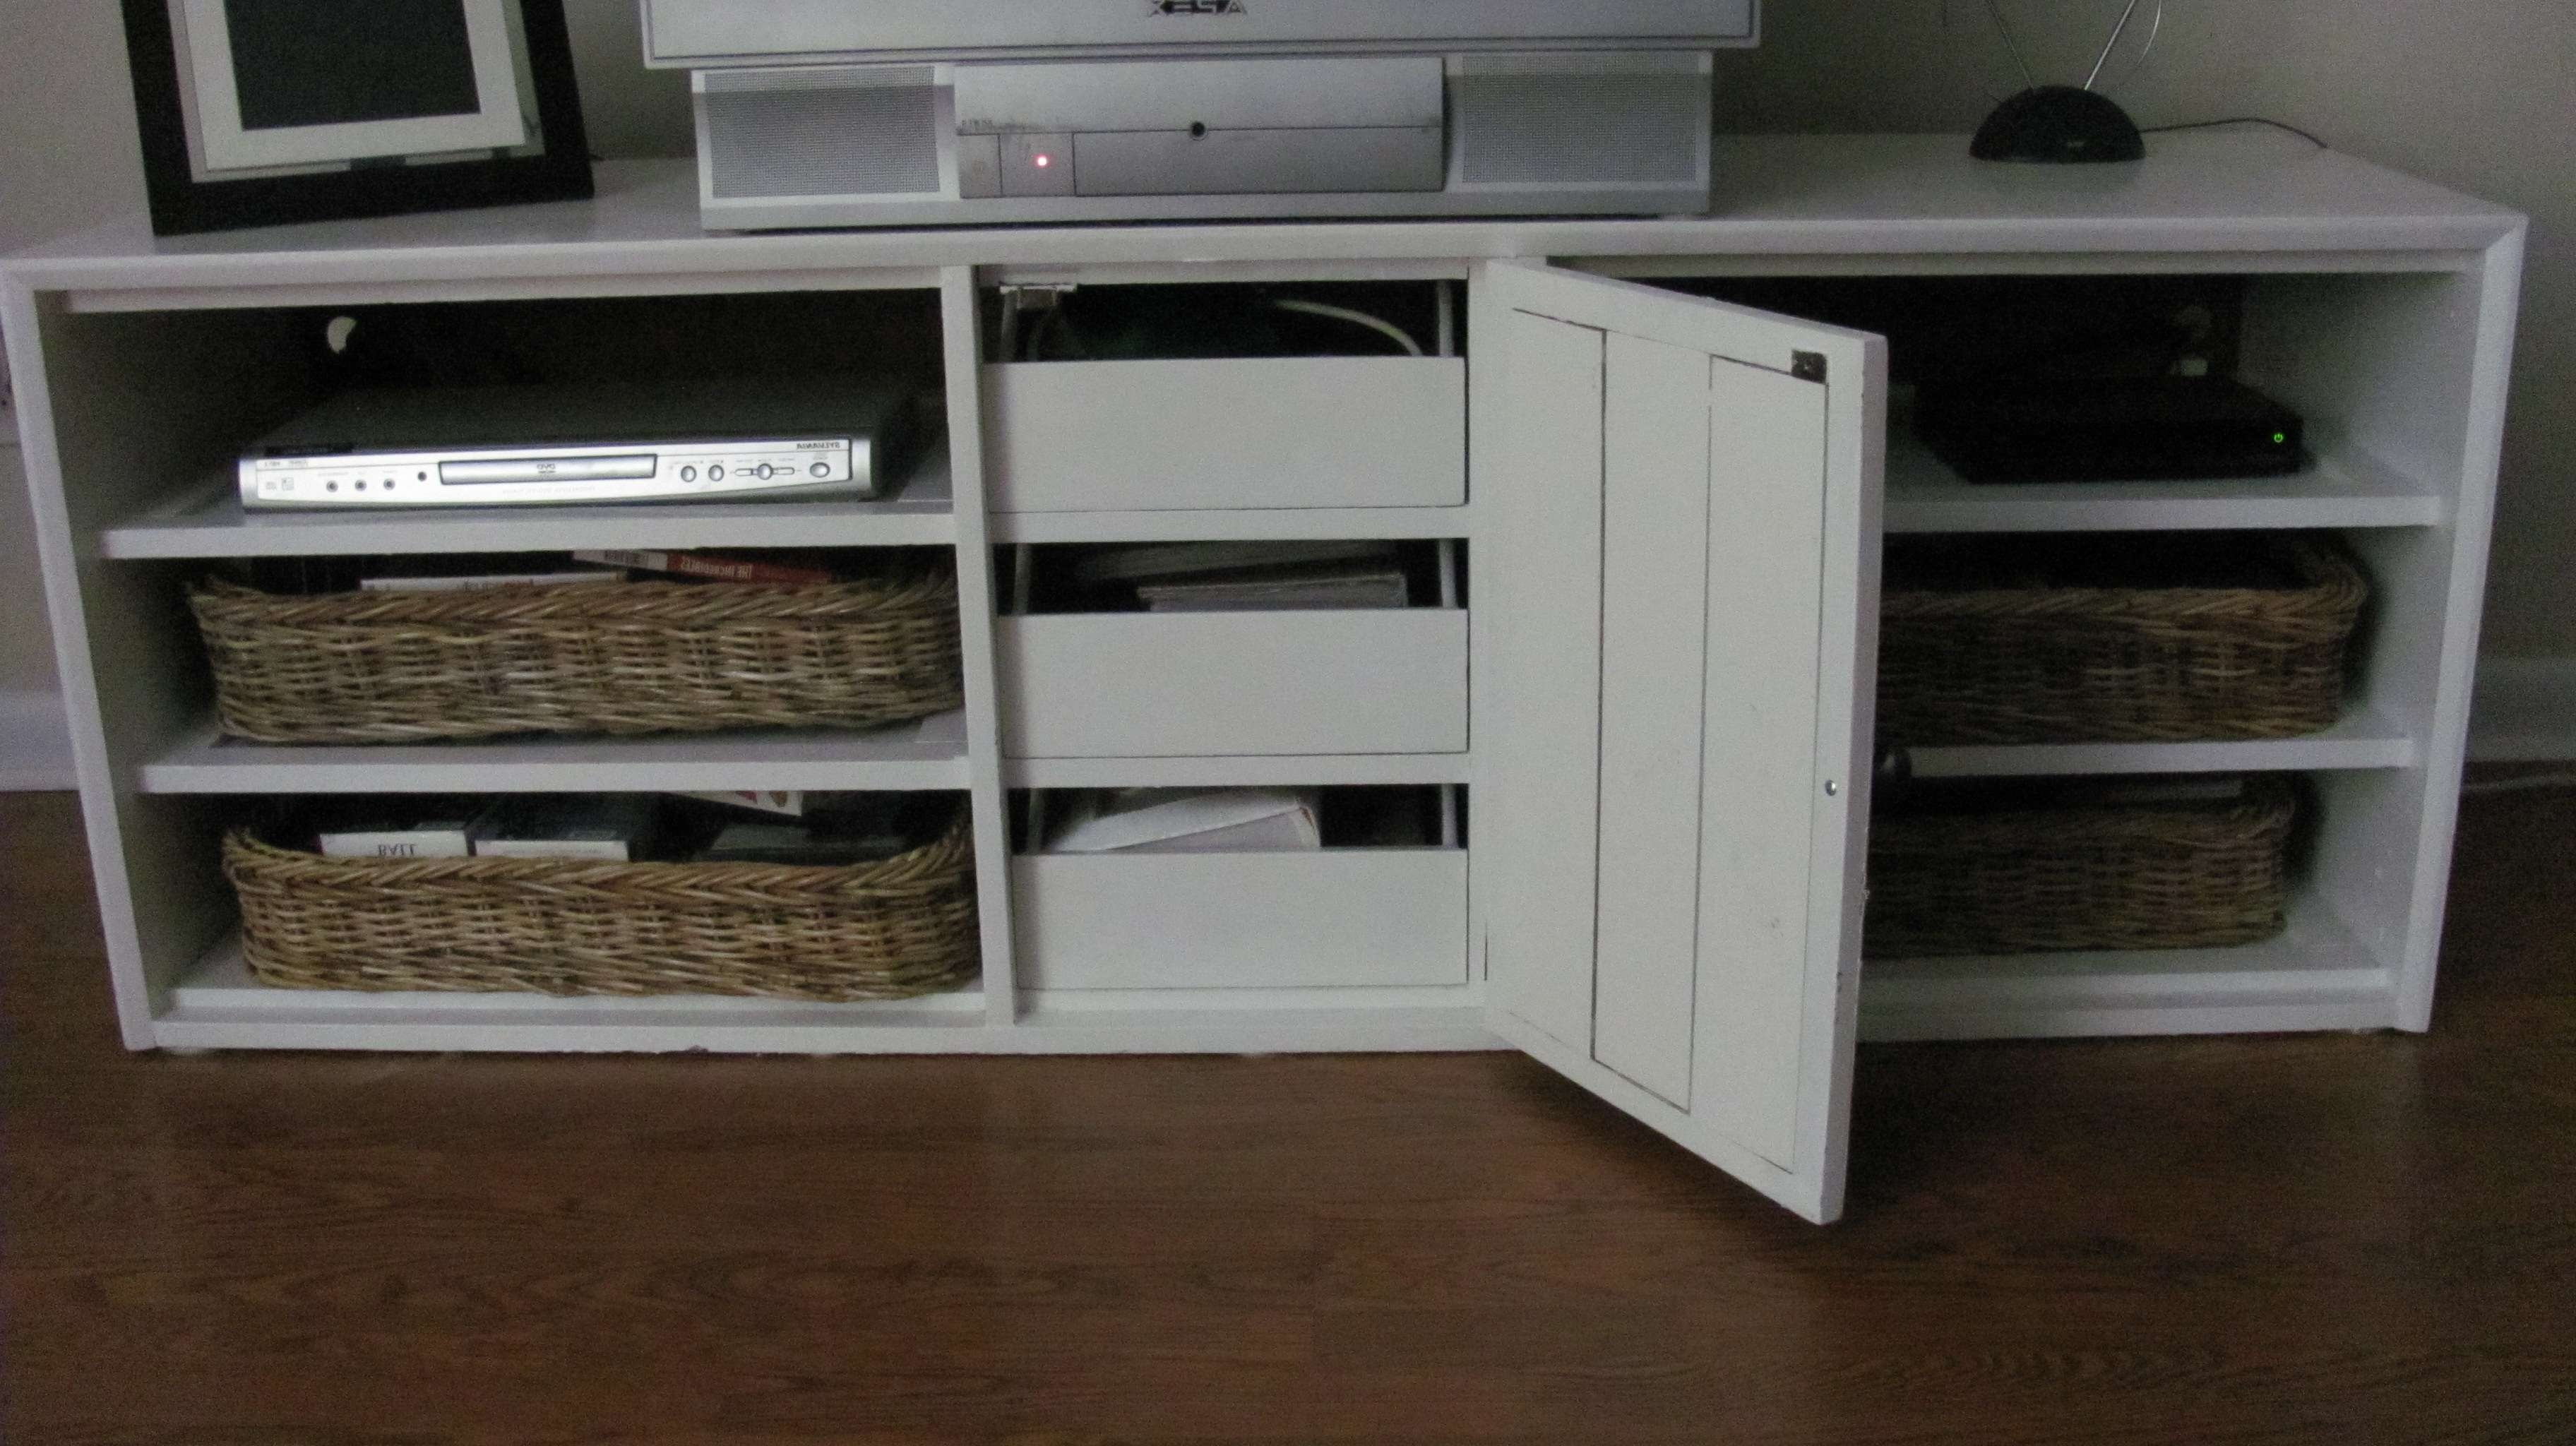 An Oak Furniture Tv Stand With Dresser Drawers | Johnfante Dressers Inside Tv Stands With Baskets (View 1 of 15)